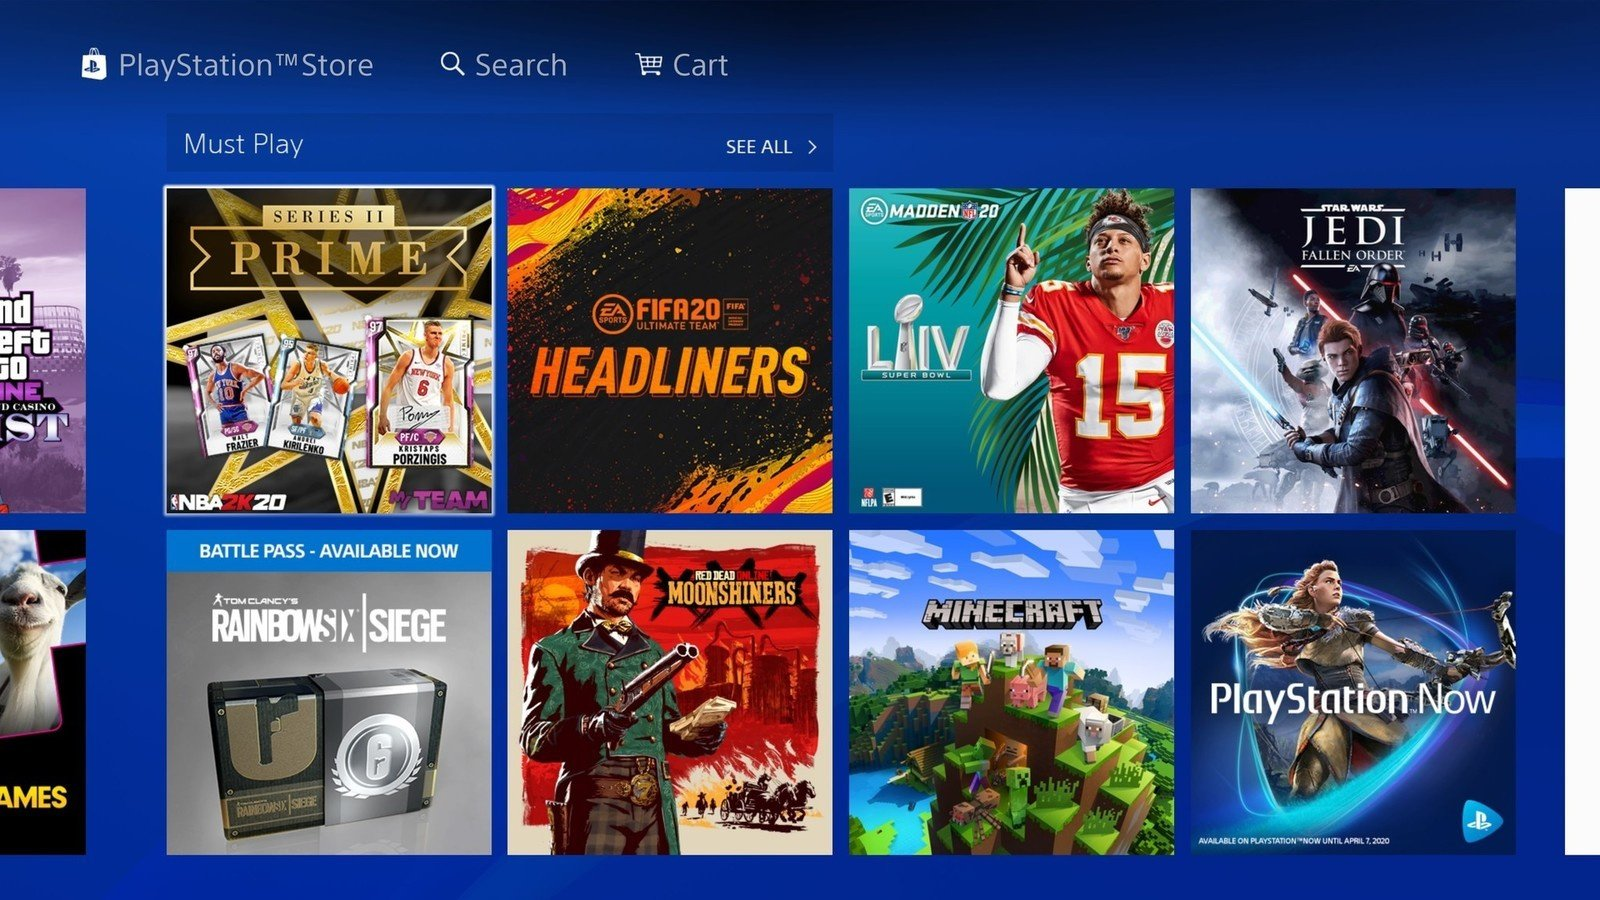 Indie Dev Demonstrates How Bad PS Store Discoverability Can Be - Push Square